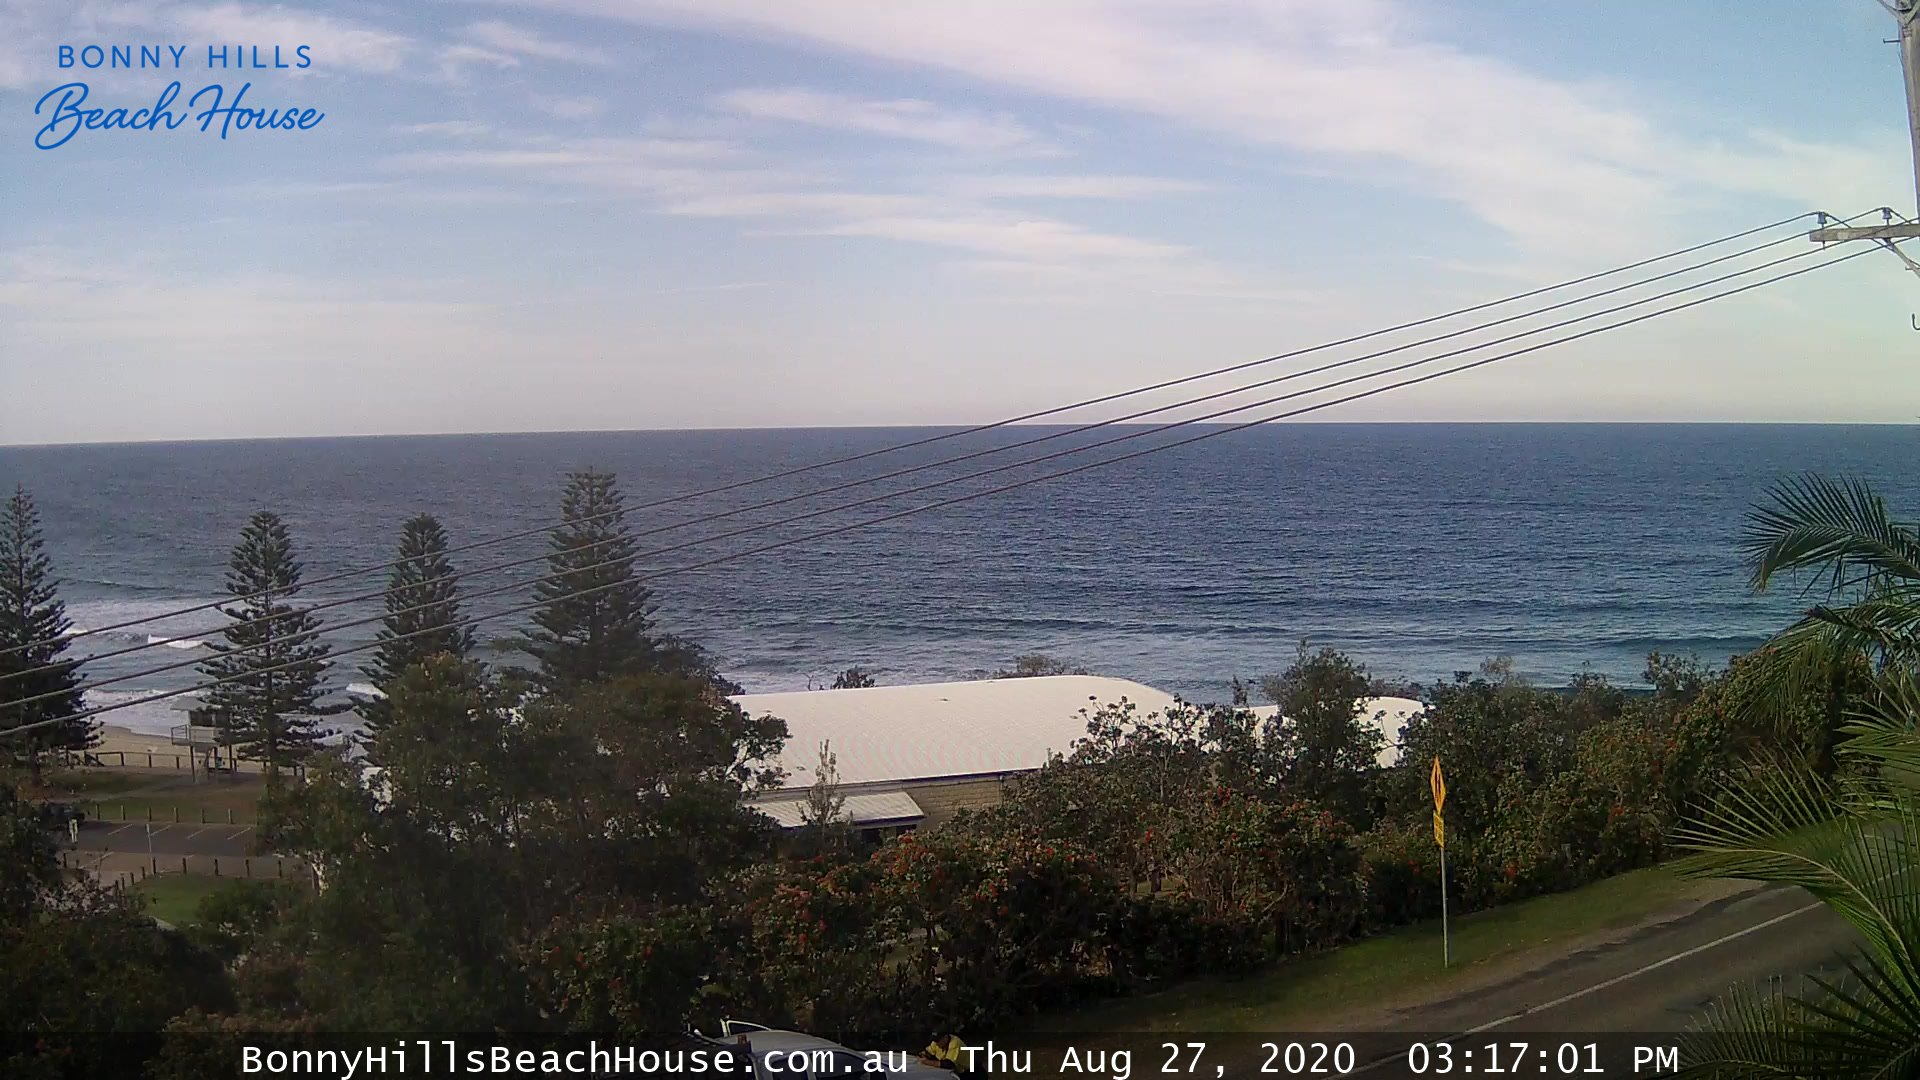 Rainbow Beach webcam - Bonny Hills Beach House East Surf webcam, Queensland, South East Queensland